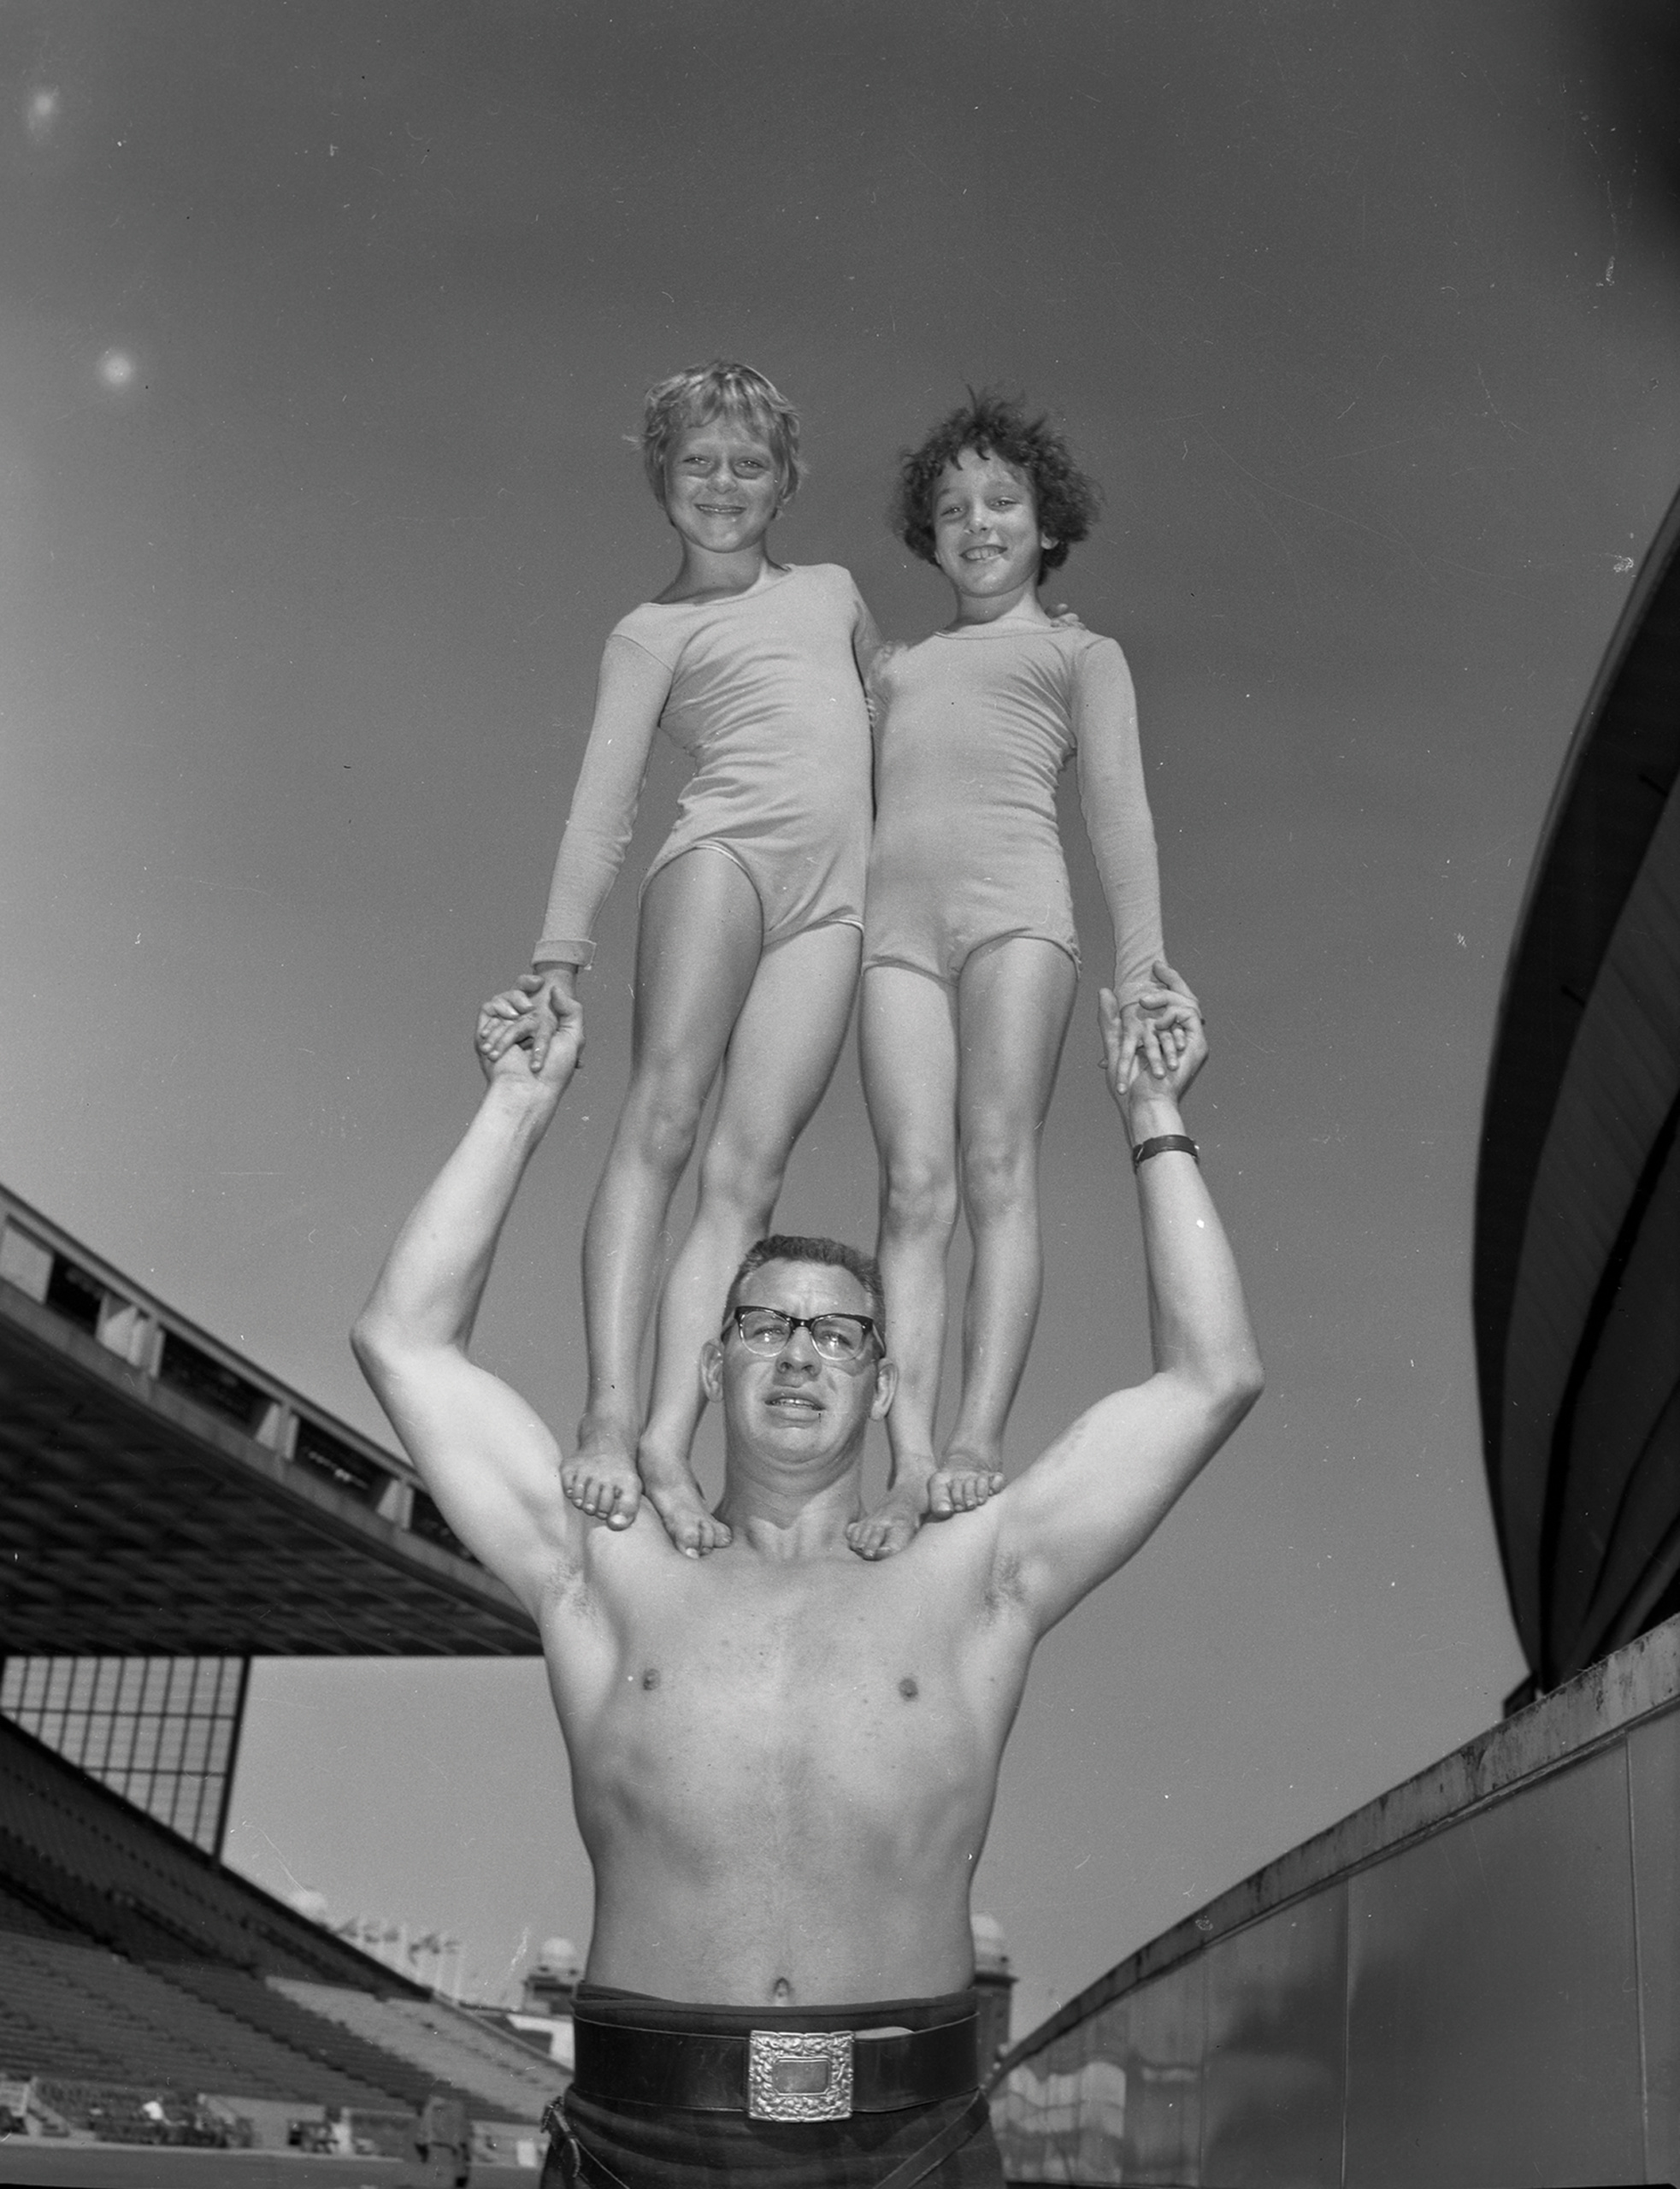 Standing Tall, 1962. Canadian National Exhibition Archives, MG5-F771-I5. Courtesy of the CNEA